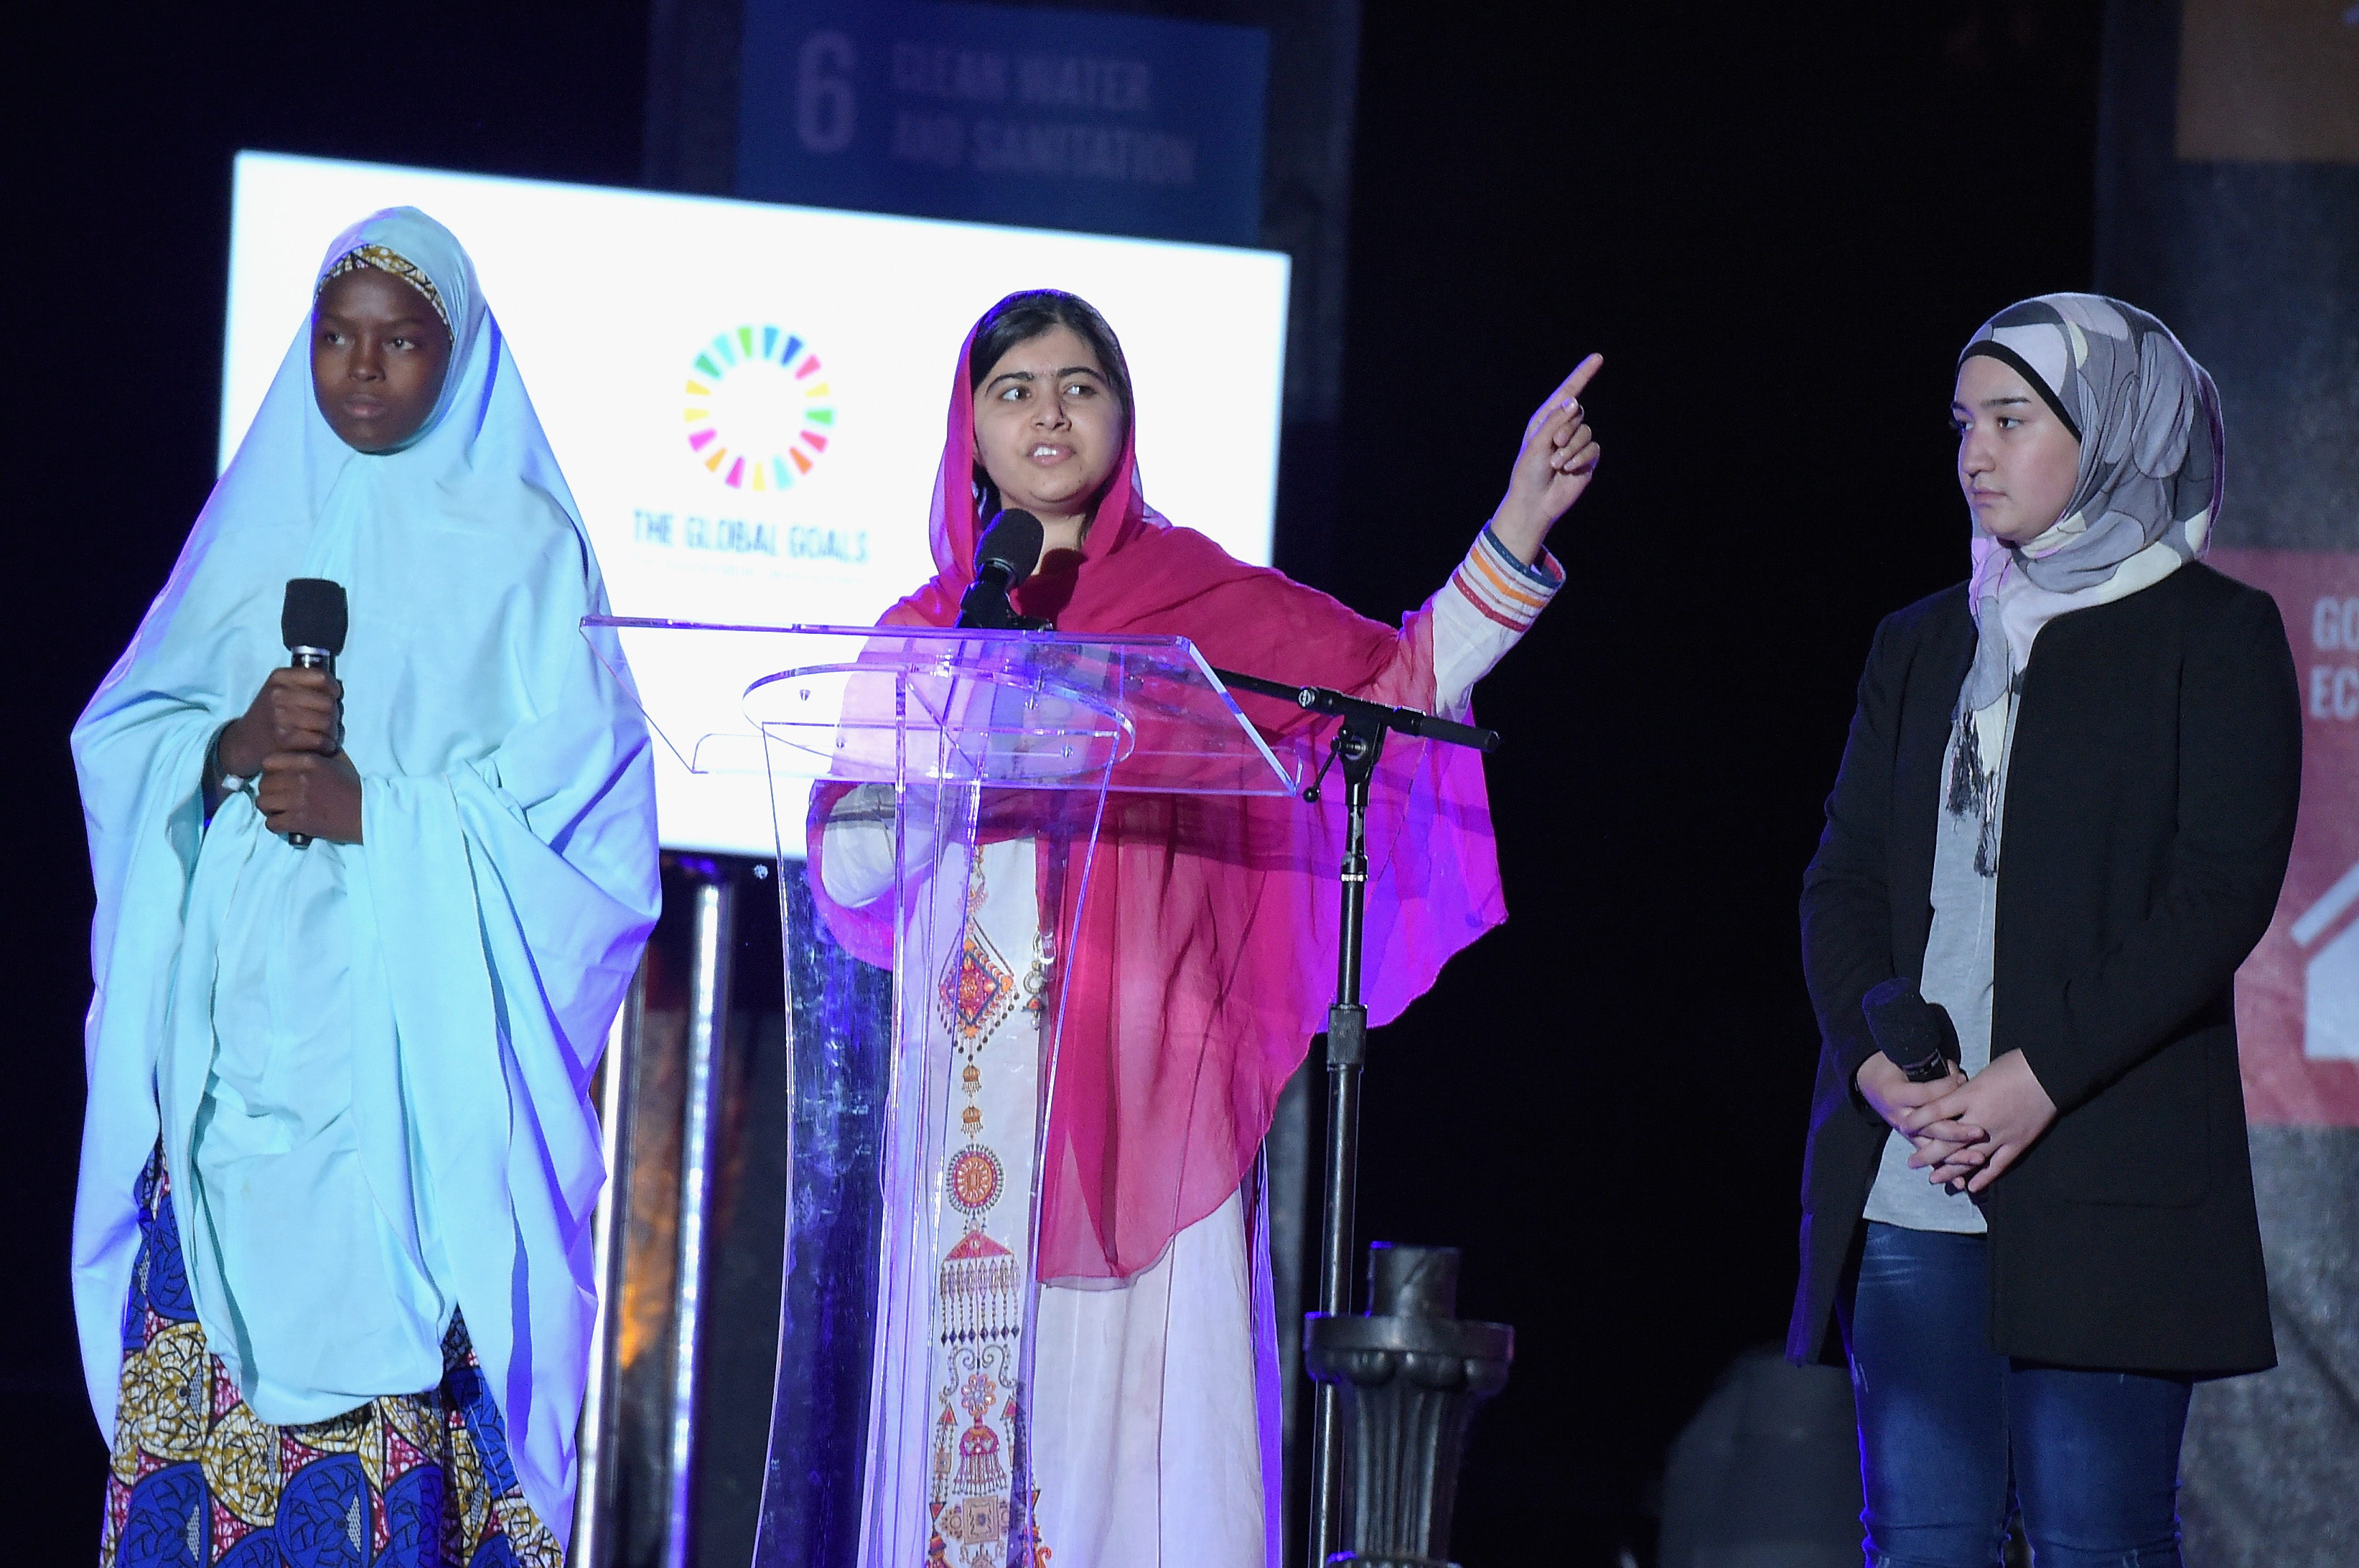 Activist Malala Yousafzai, center, speaks on stage at the 2015 Global Citizen Festival to end extreme poverty by 2030 in Central Park in New York City on Sept. 26, 2015